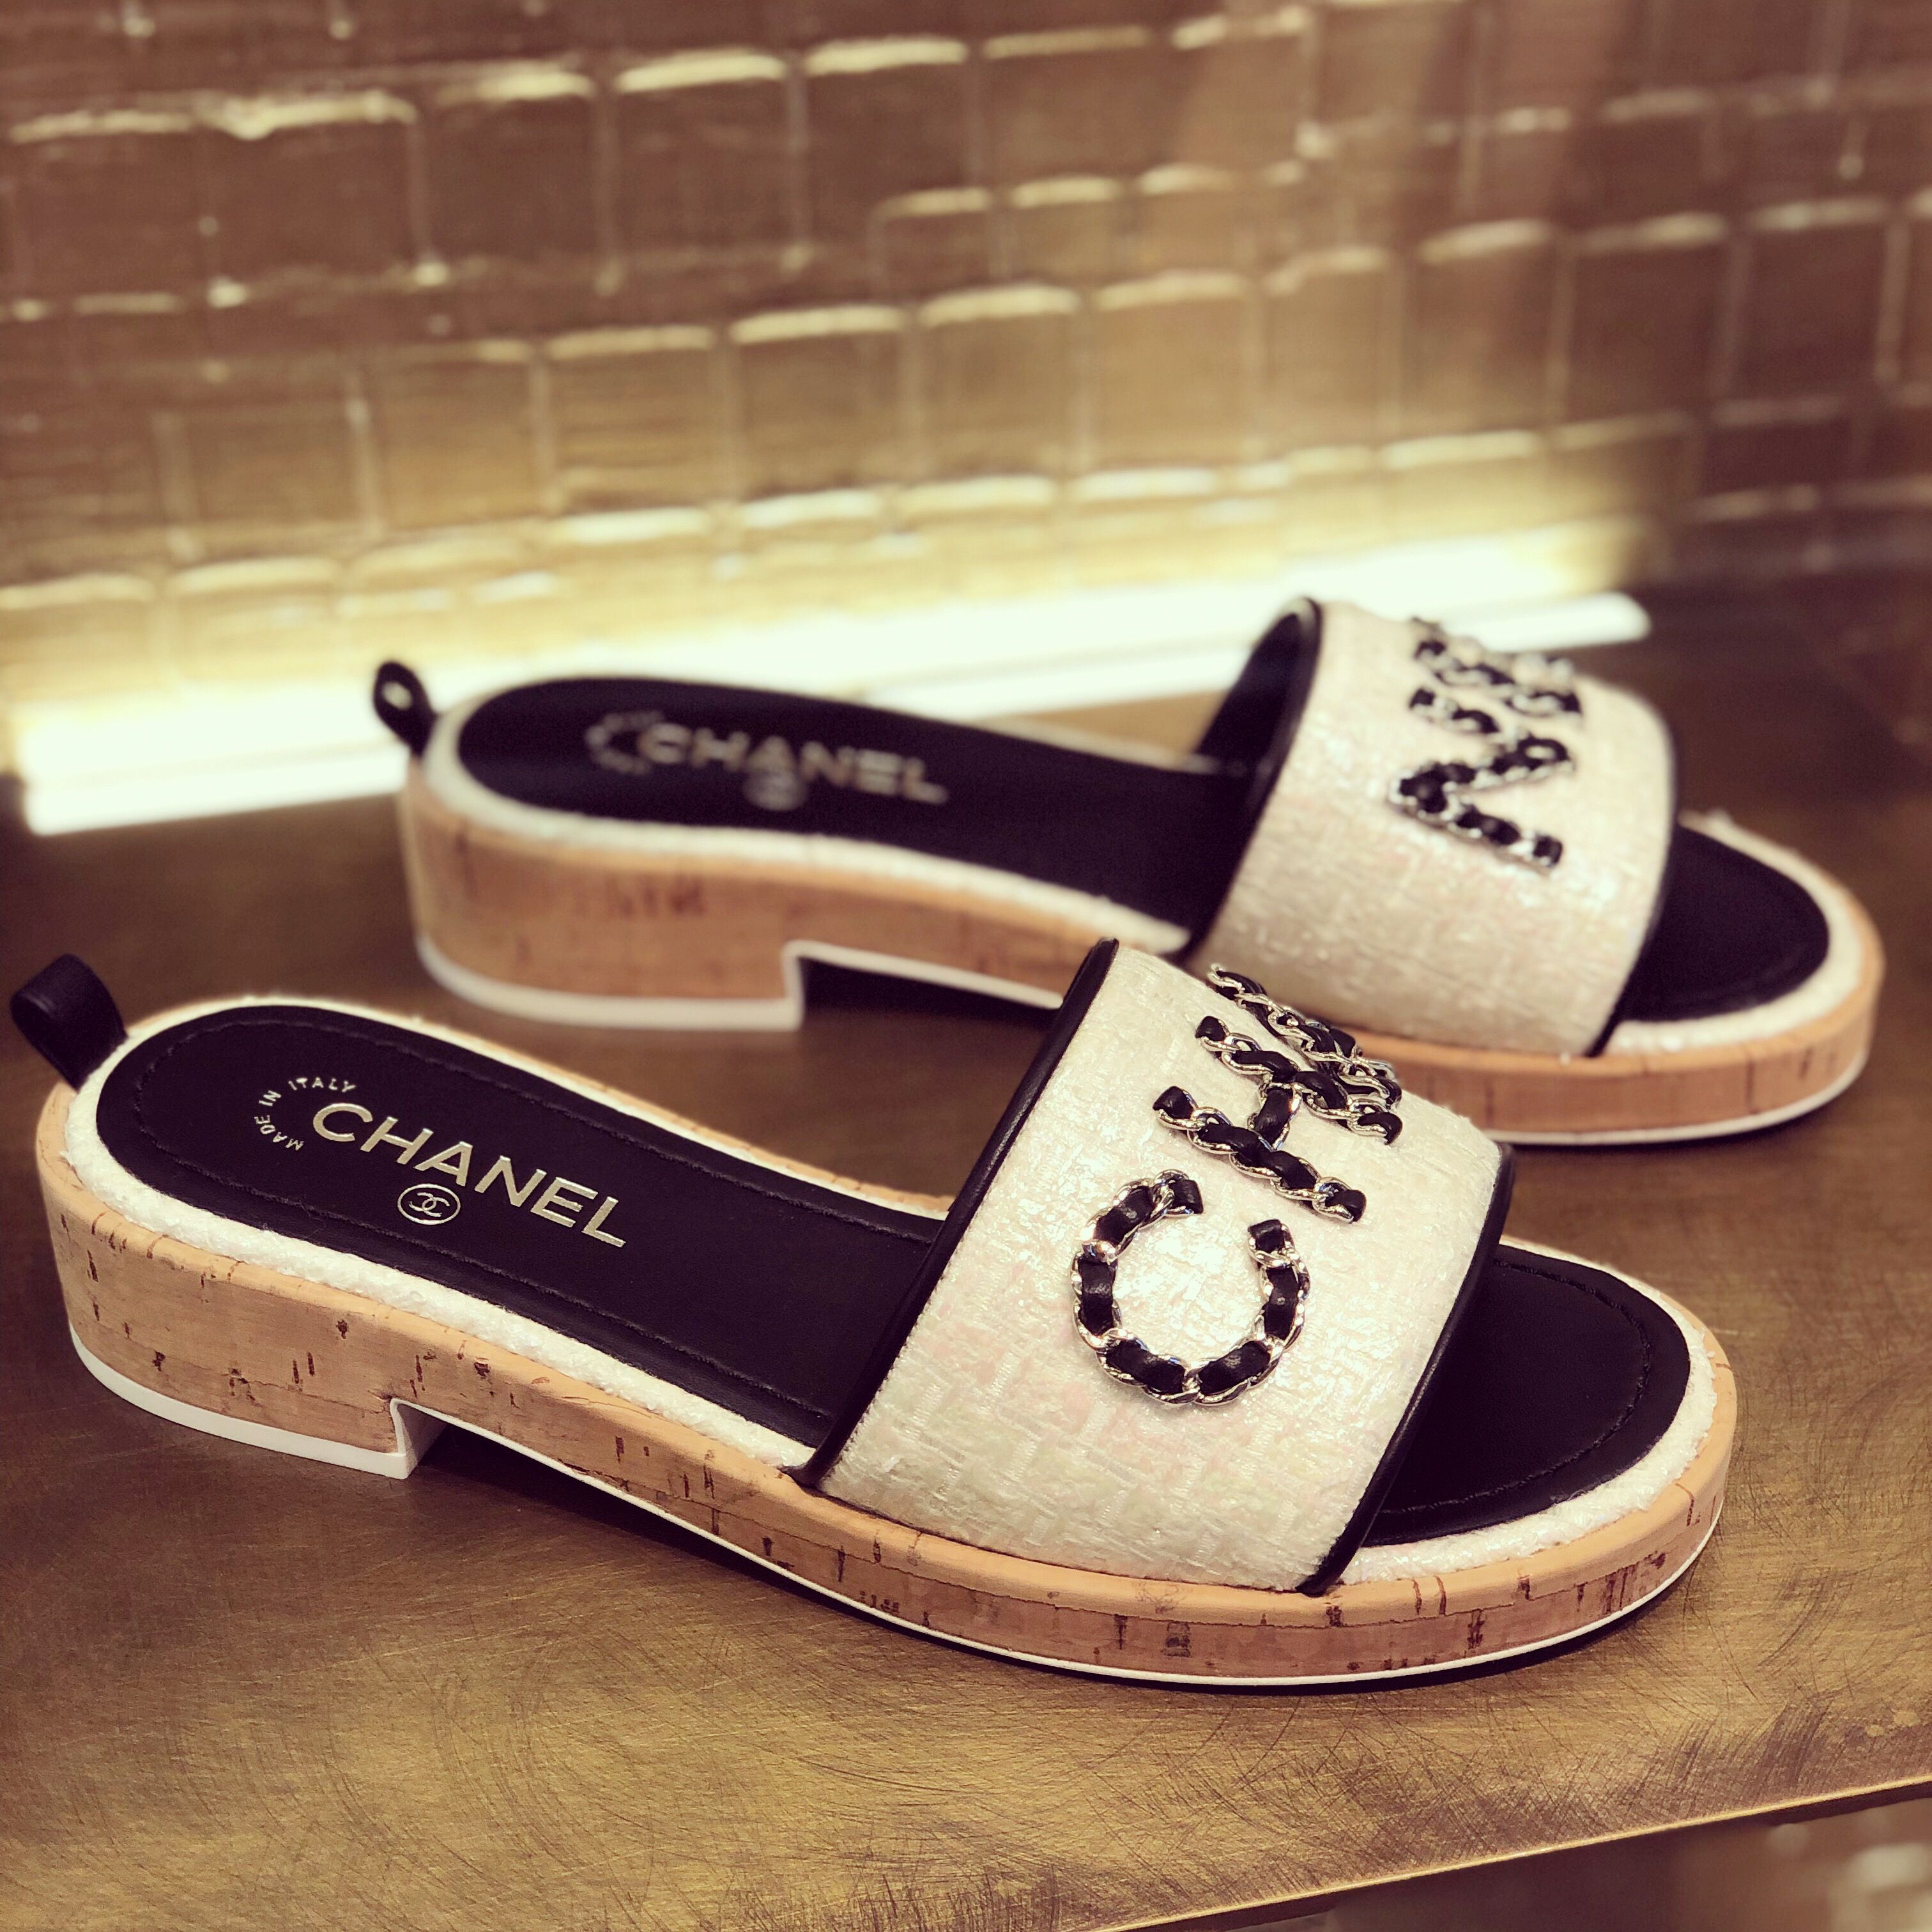 Chanel SS19 Sandals   Chanel shoes